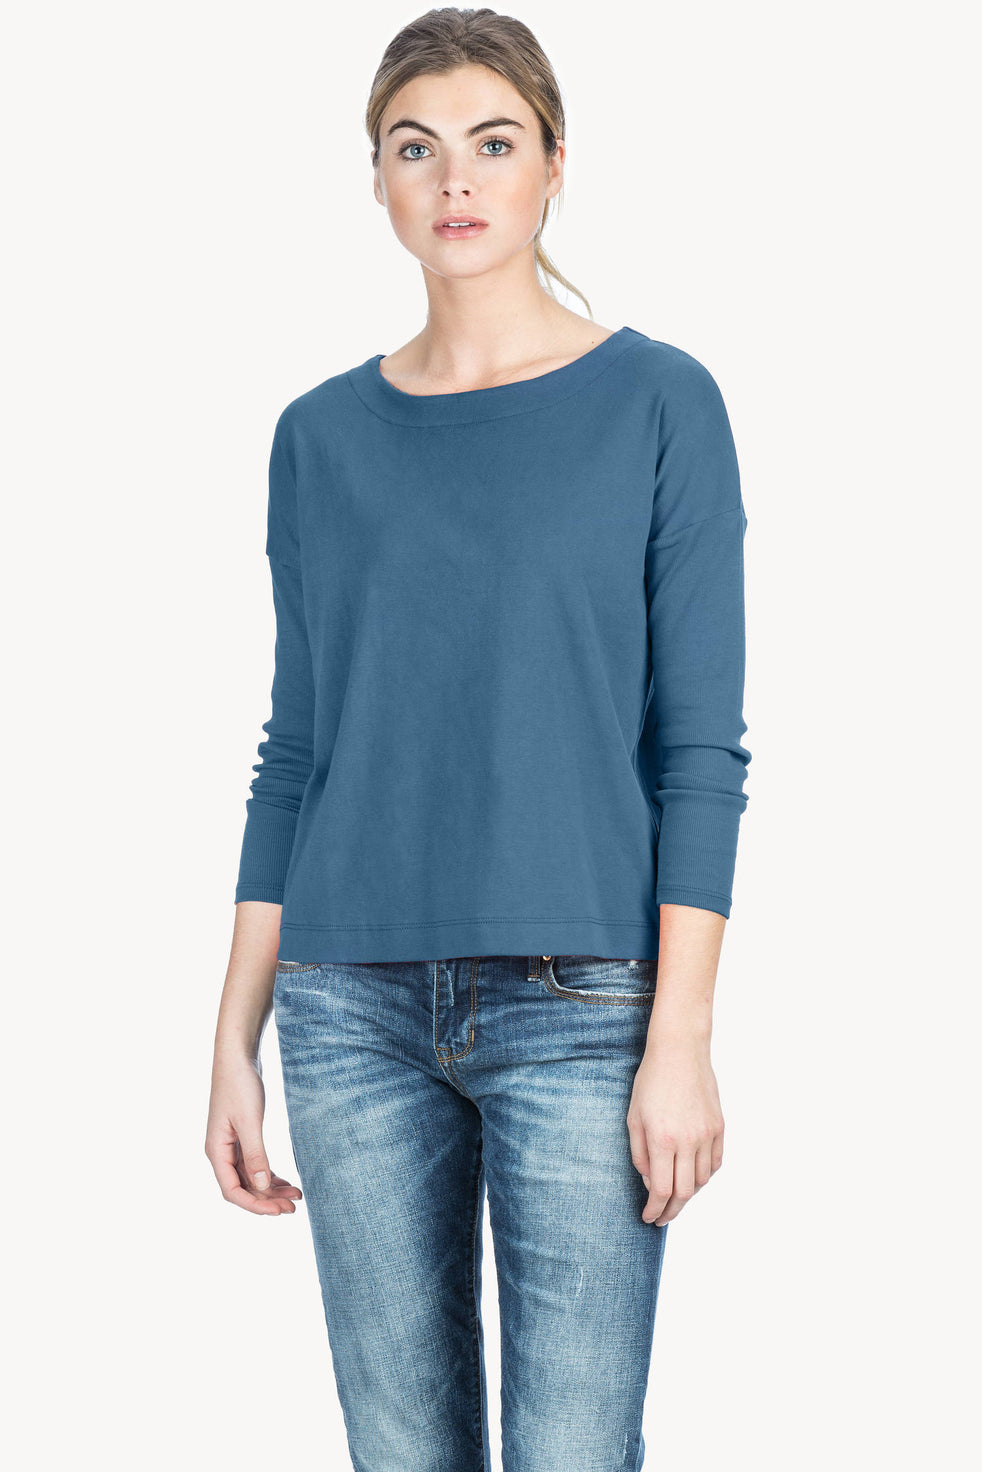 b3545faaa90 Ribbed Sleeve Boatneck Womens Top Nile A1 ...